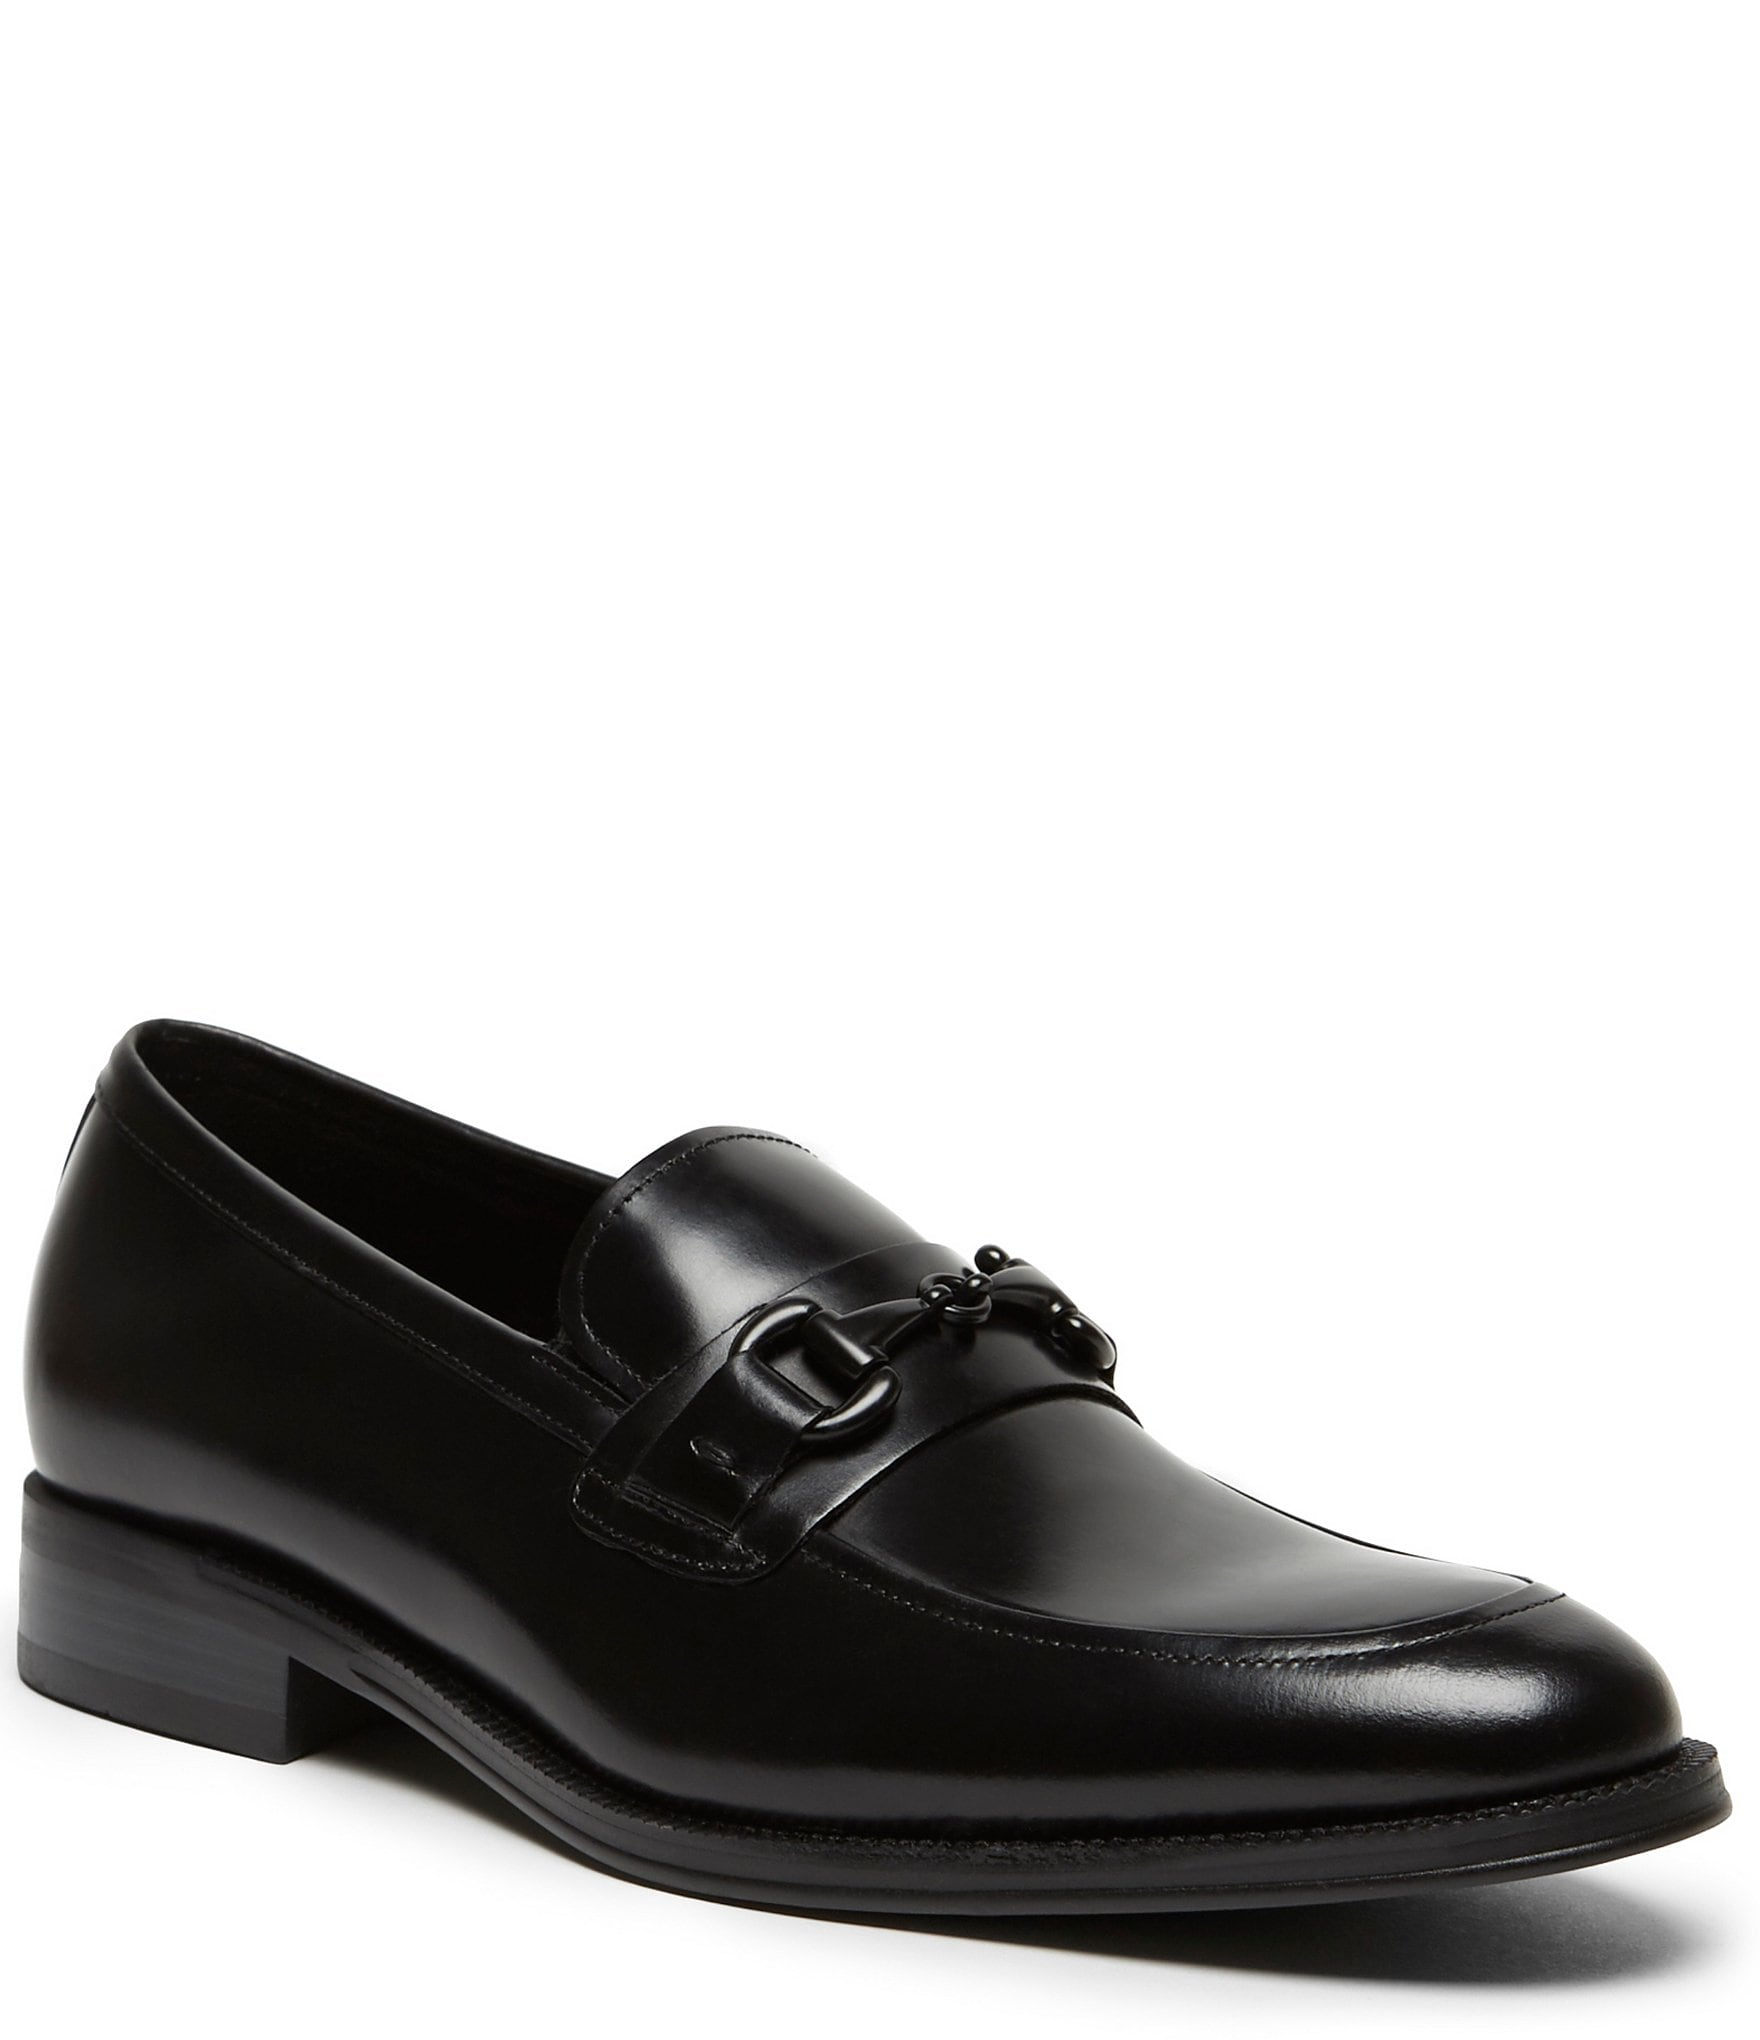 cb52cc859770b Kenneth Cole New York Men's Brock Leather Loafer | Dillard's